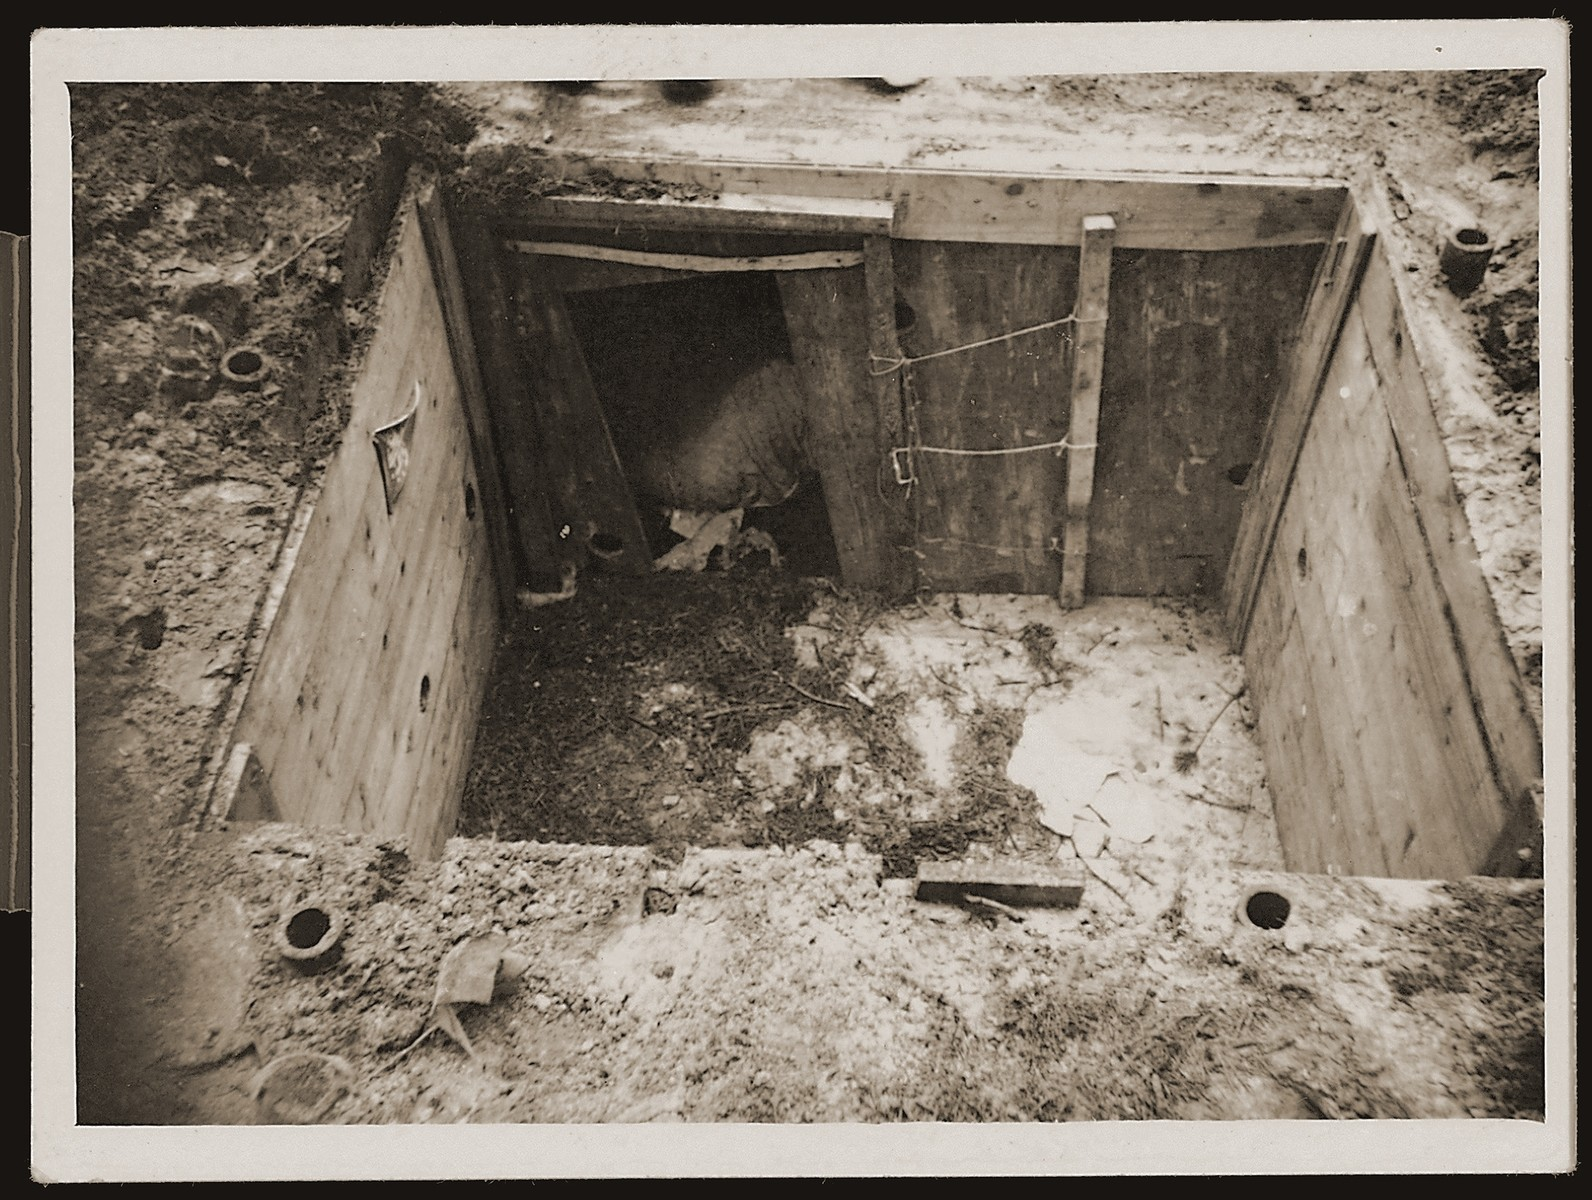 View of the bunker that served as a hiding place for Dutch Jews in the Eibergen region in 1942-1943.  The bunker was discovered by the Germans one day before this photograph was taken.  The bunker was, in actuality, a prefabricated hut that was ordered by two Jewish brothers, Abraham and Herman Maas from Eibergen.  It was delivered in sections to a site in the Hoones Forest outside Eibergen.  The Maas brothers got permission from the manager of the privately-owned forest to build a subterranean hiding place for themselves.  Two sympathetic non-Jews conveyed the materials, dug the hole and assembled the shelter, which had two rooms and a crude stove.  Initially, only the brothers hid there, but as times grew more desperate, 23 Jews were concealed in the bunker.  On March 27, 1943 a Dutch informer led Germans to the site.  All 23 were arrested and sent to Westerbork.  From there they were deported to Sobibor and killed.  After the war the informer was identified as E. Heijink and tried as a collaborator.  The photographer was a Dutchman, who was ordered to take pictures of the bunker the day after the Jews were captured.  He made an extra set of prints, which he kept secretly, and made available to resisters and surviving Jews after the liberation.  The policeman posed inside the bunker in order to better convey its size.